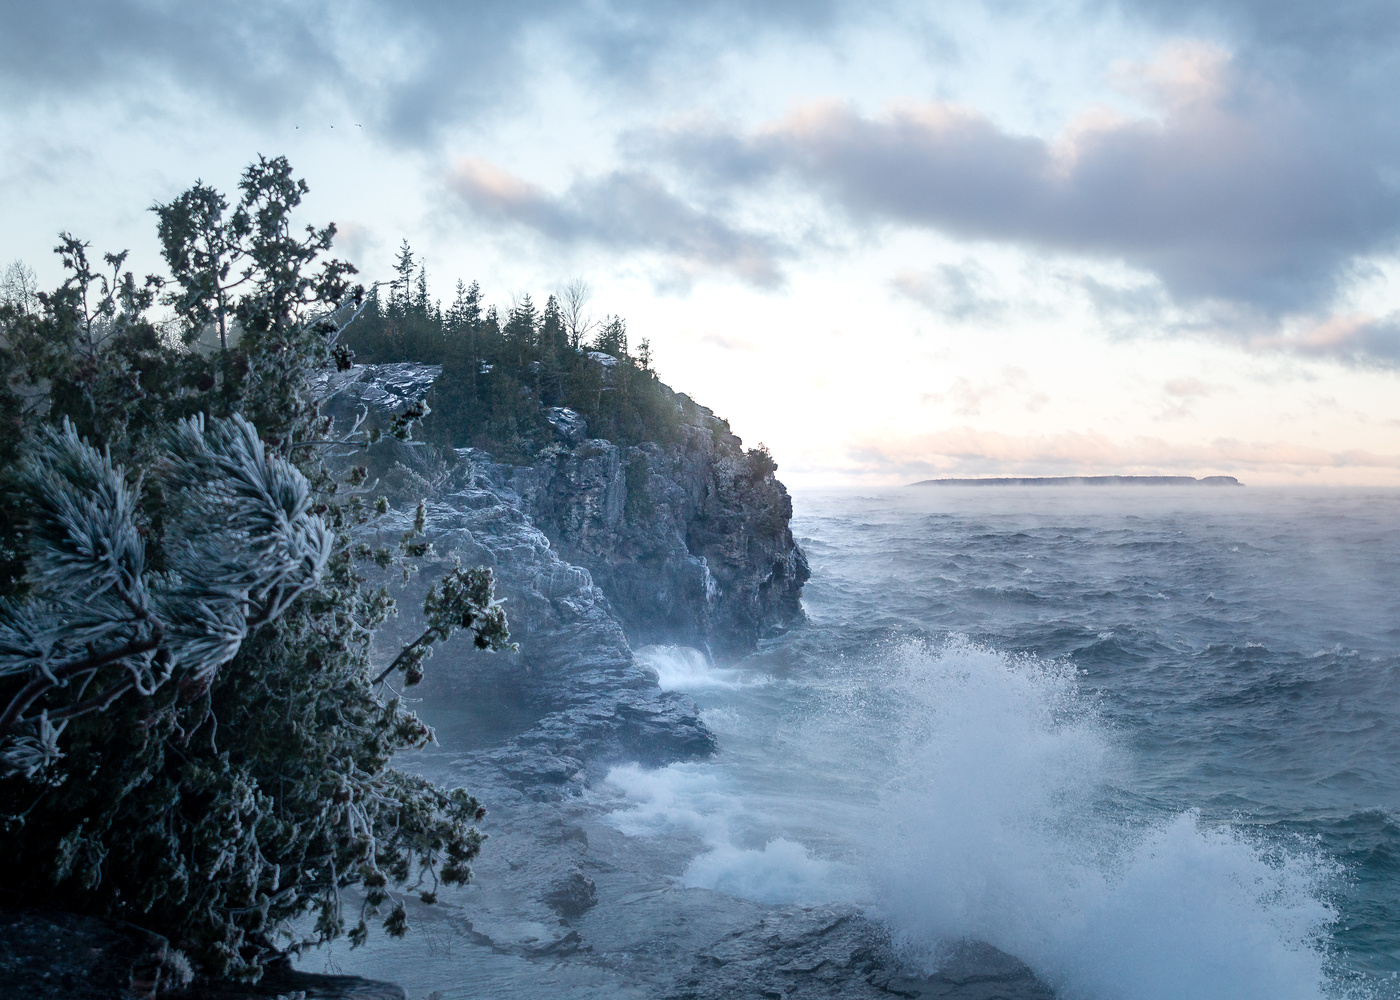 Indian Head Cove #2 by Greg Zmich